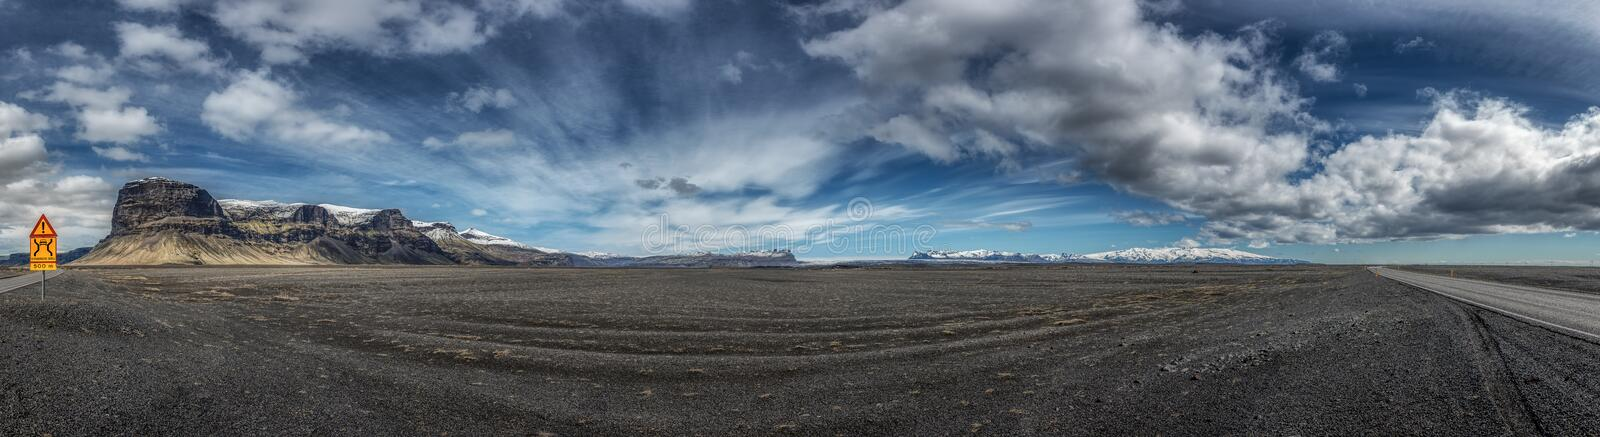 Mountain landscape in Skaftarhreppur - Iceland. Excellent panoramic of 15 shots - Excellent panoramic of 15 shots royalty free stock photos